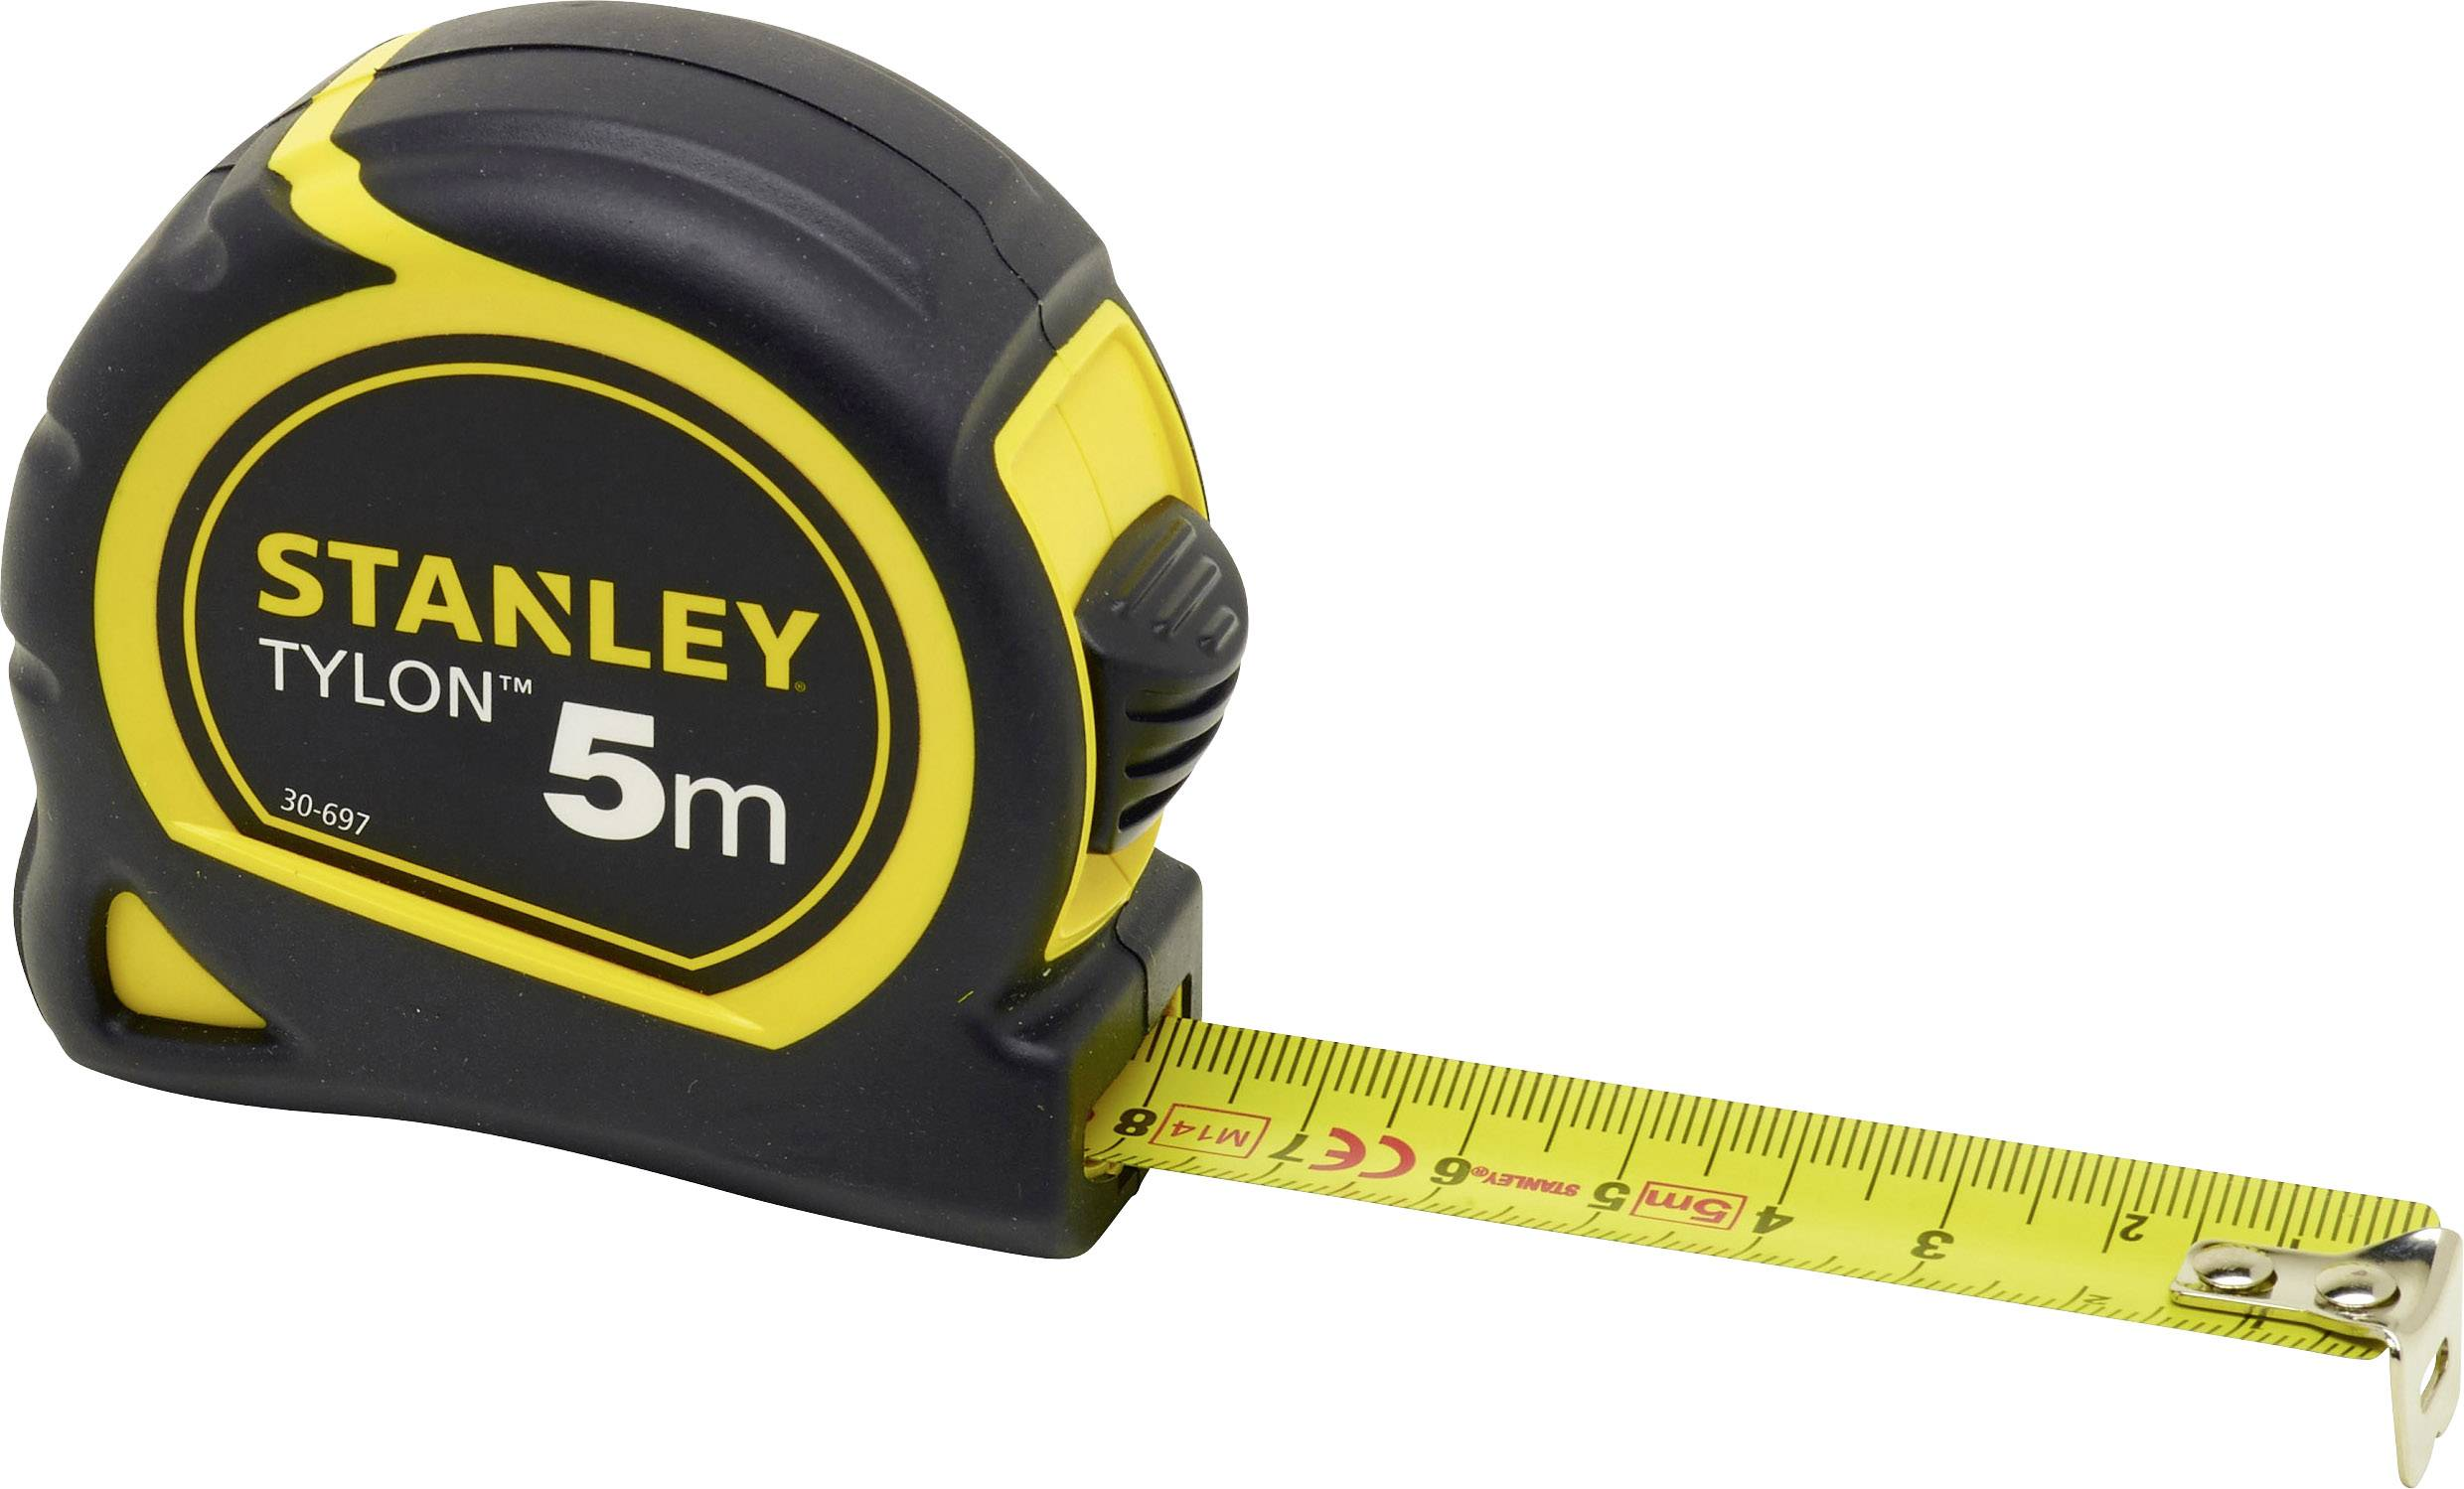 Svinovací metr Stanley by Black & Decker Tylon 5 m 1-30-697